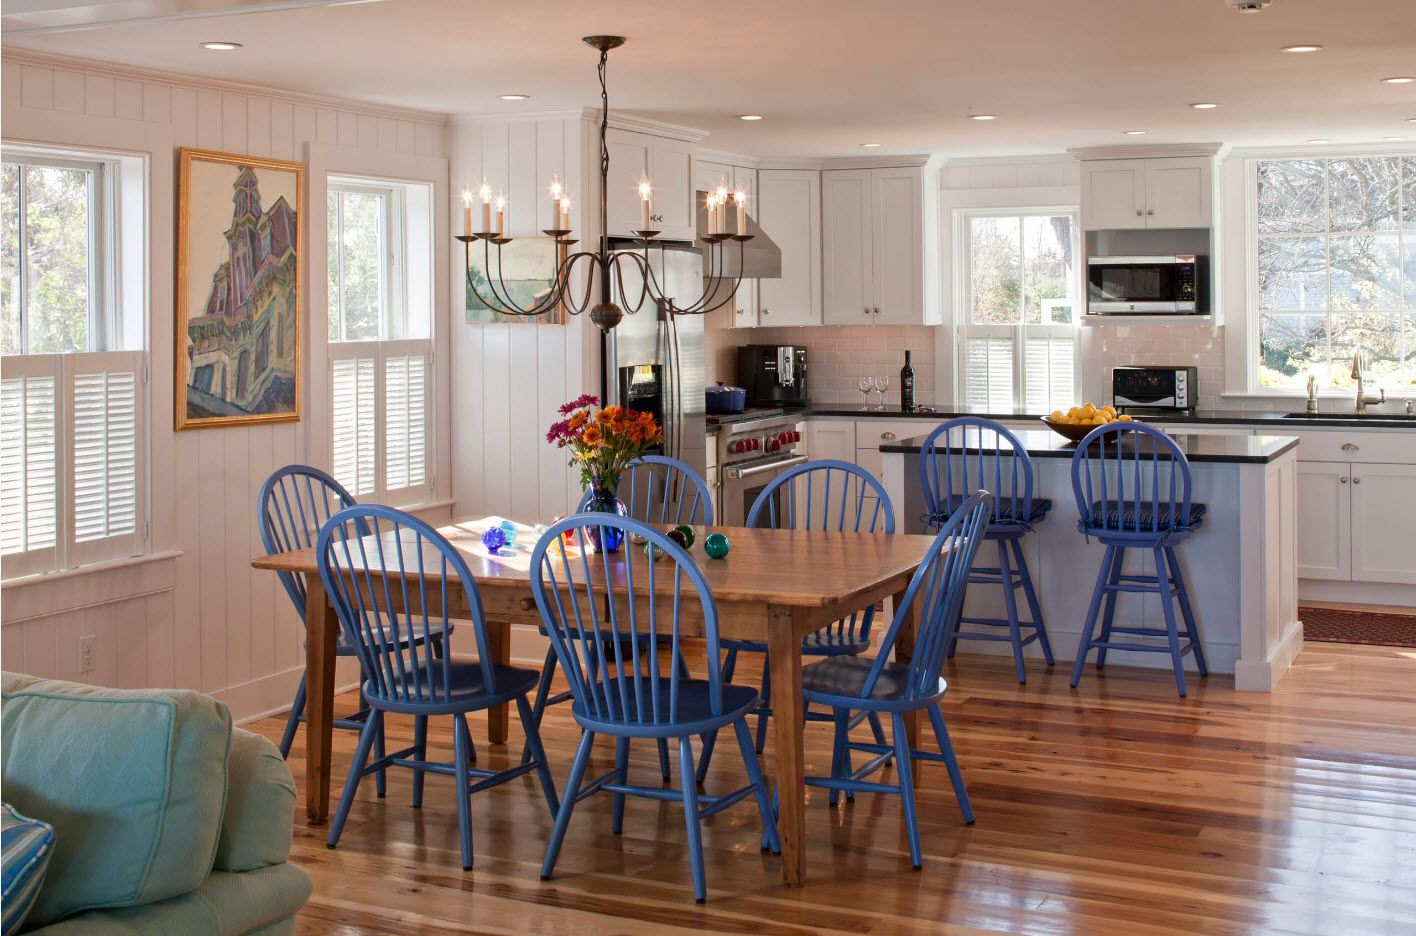 Blue stools of the classic designed dinign with wooden finished interior